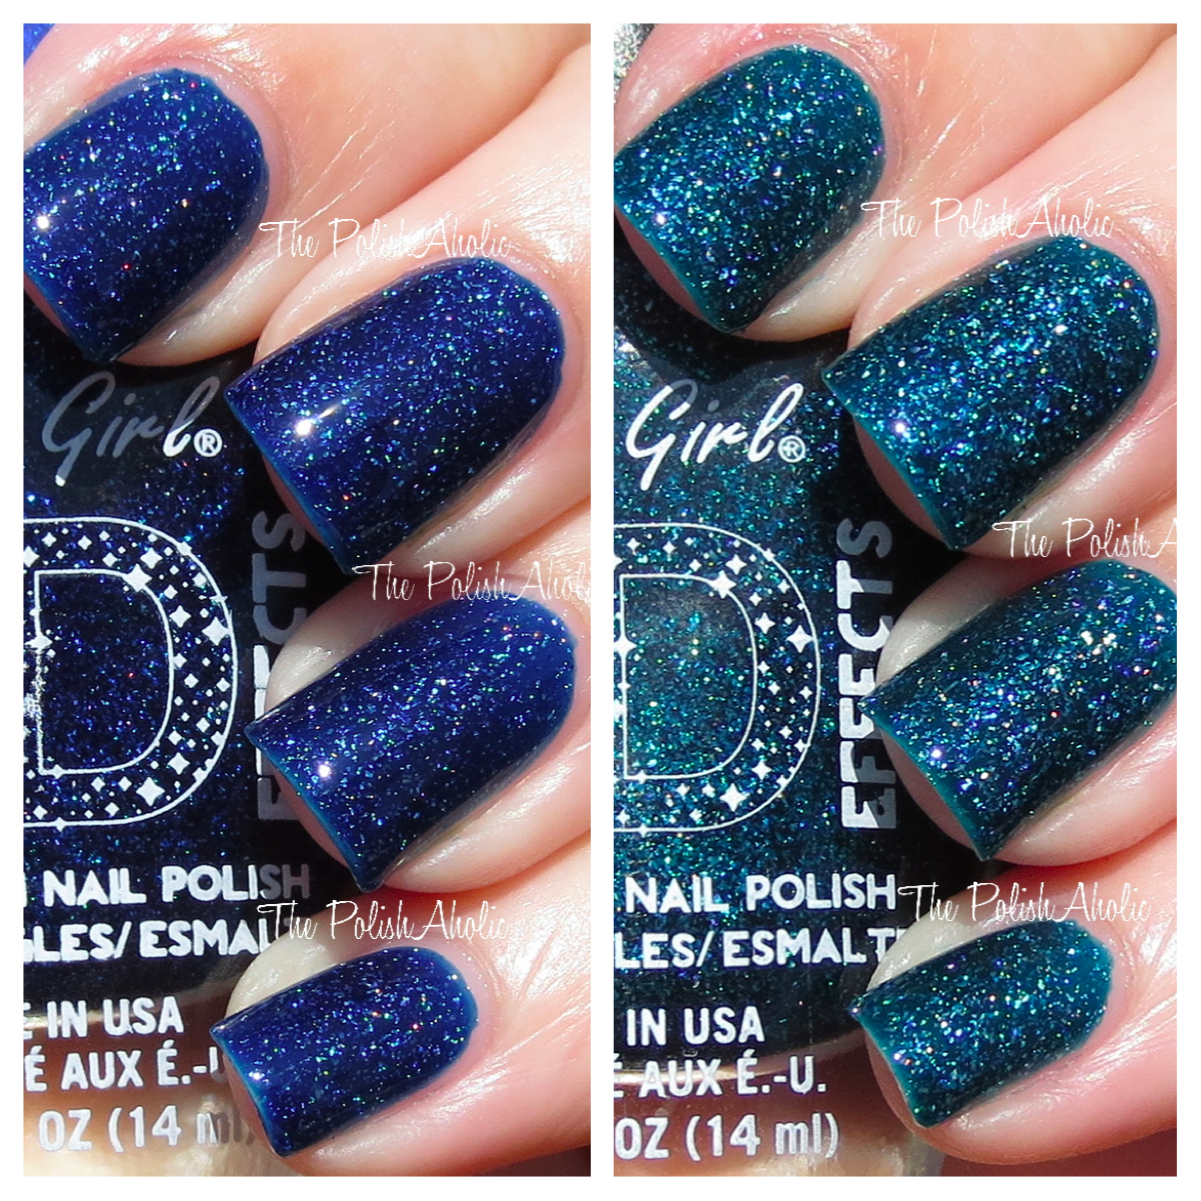 The PolishAholic: LA Girl 3D Effects: Brilliant Blue & Teal Dimension